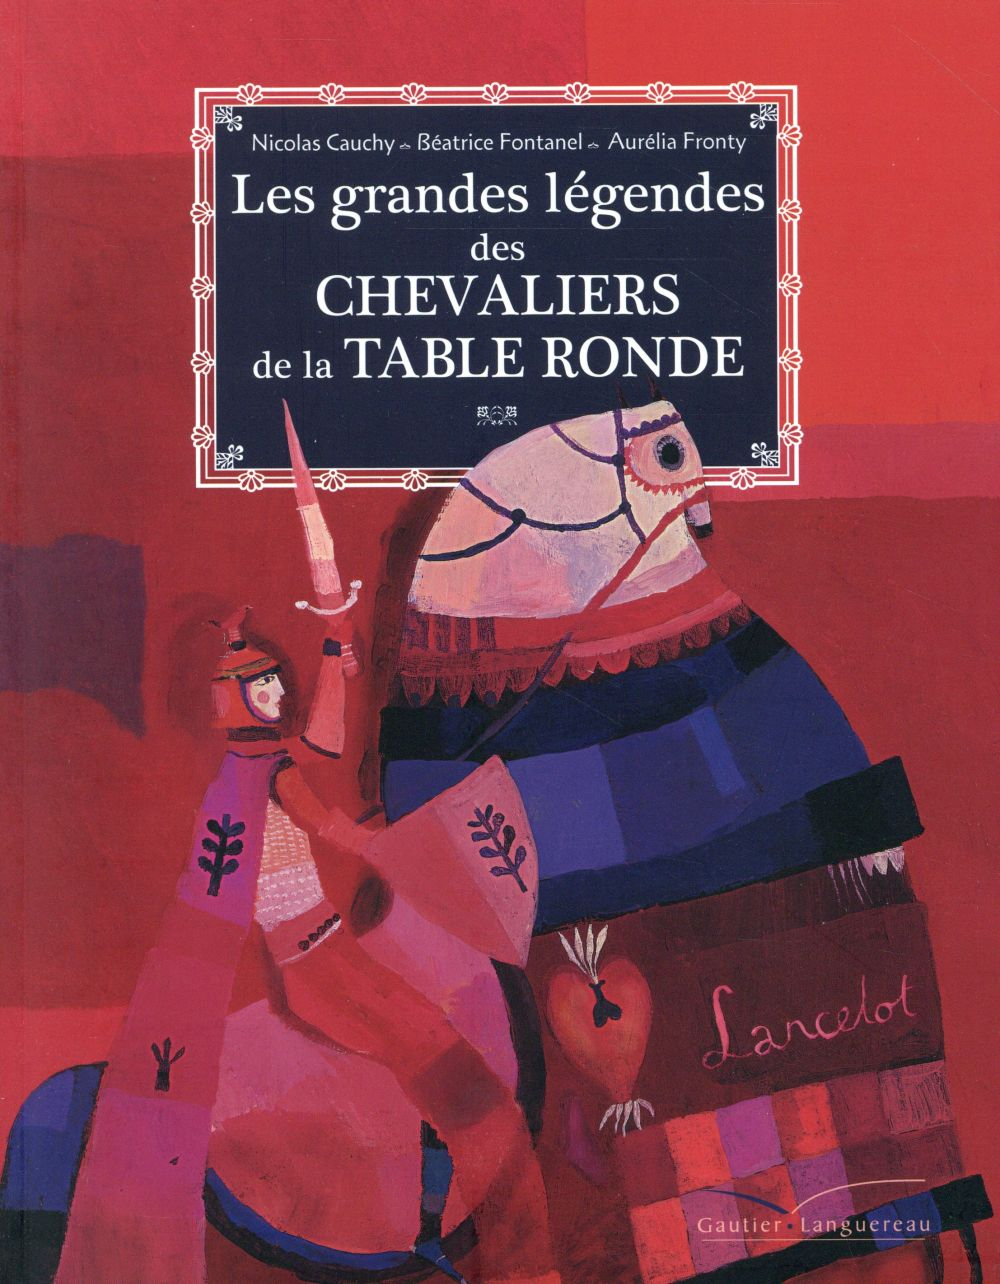 LES GRANDES LEGENDES DES CHEVALIERS DE LA TABLE RONDE